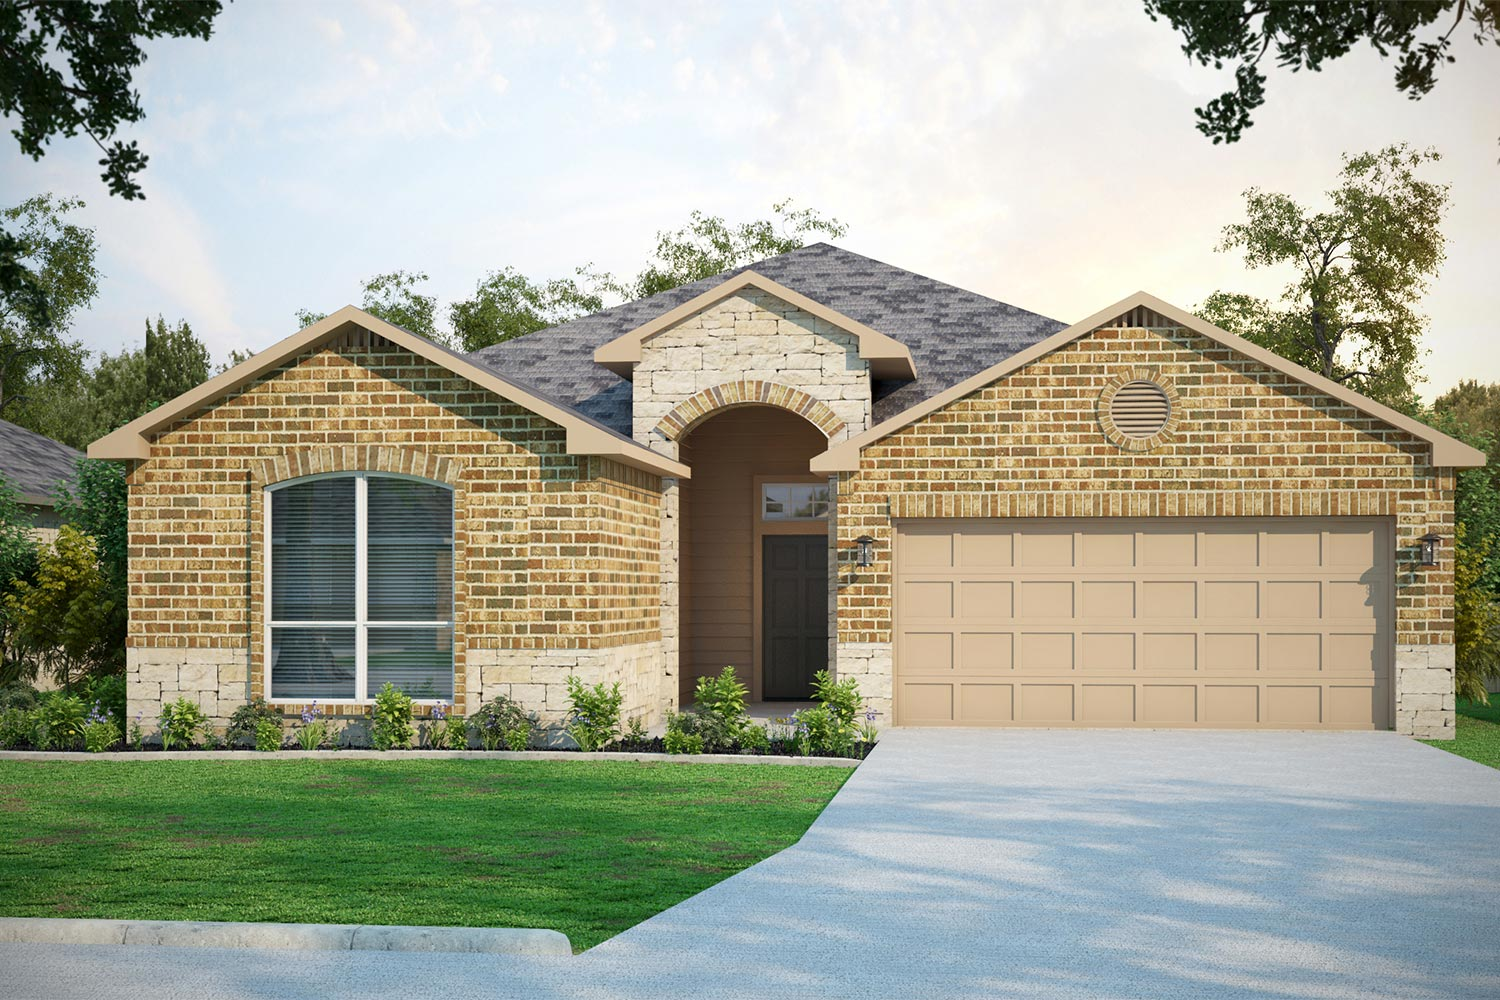 Homes for Sale in Academy ISD | 5816 Blackstone Dr, Temple TX